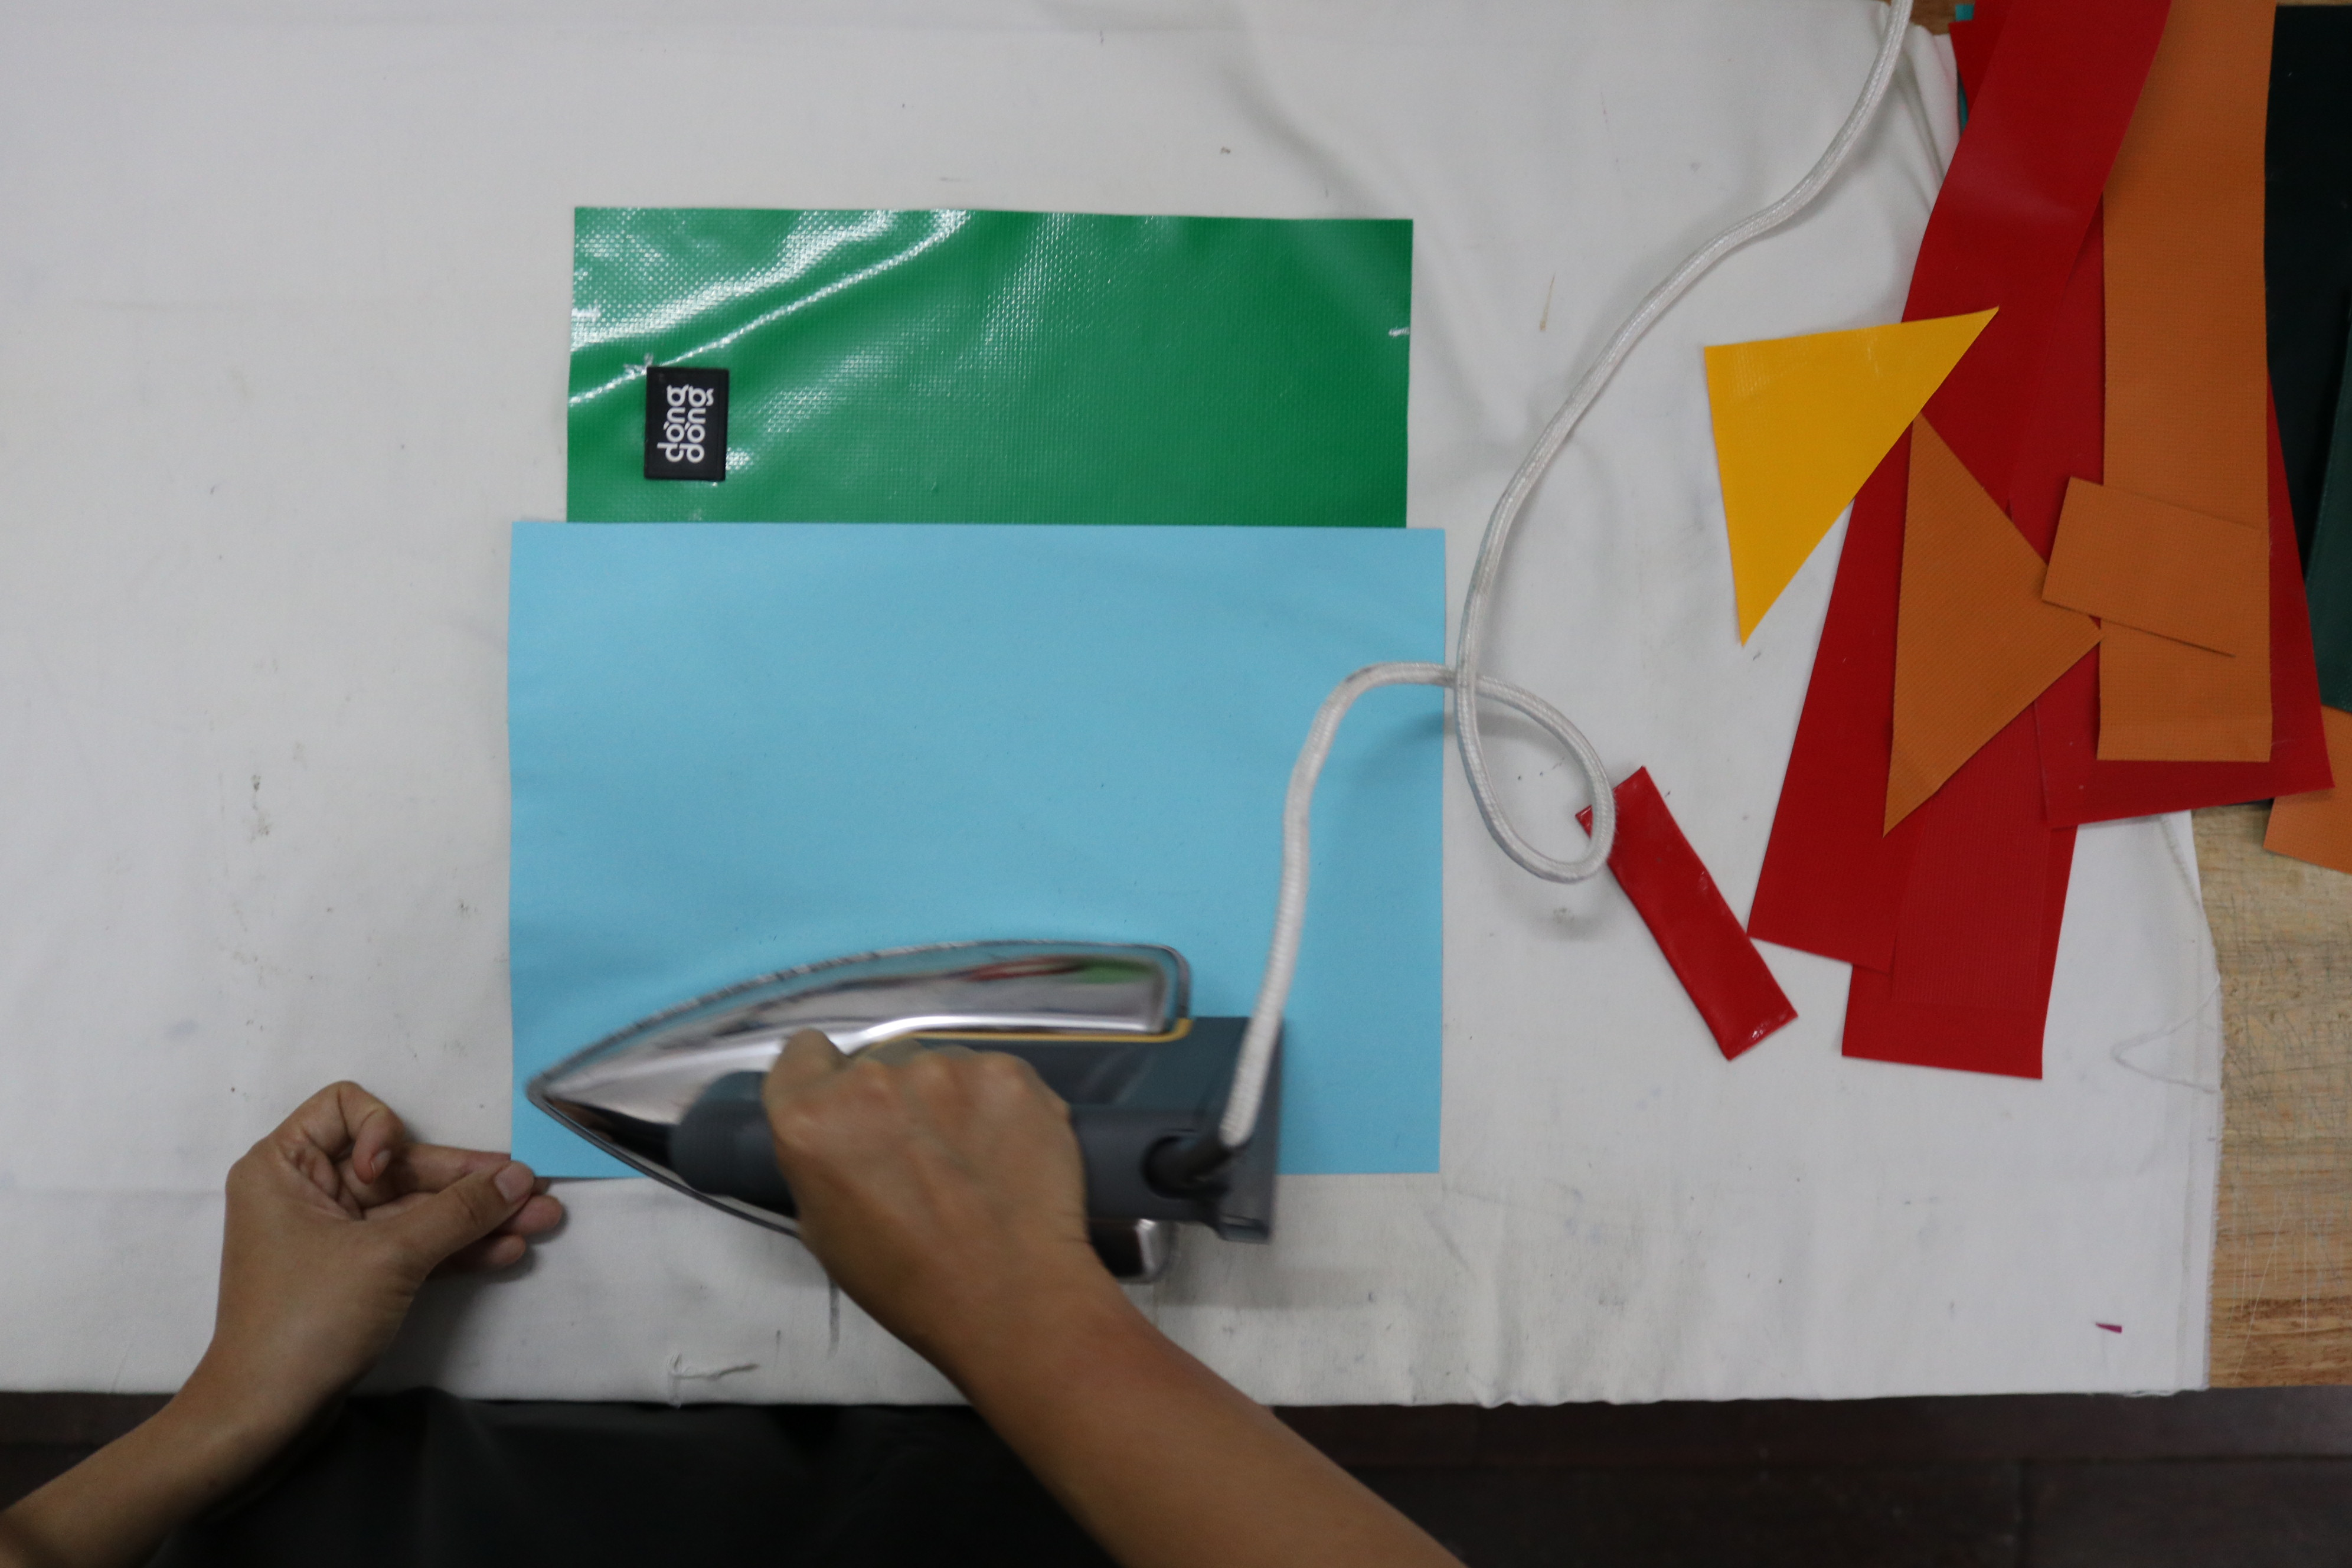 Dong Dong Sai Gon's logo on a piece of tarp being ironed at the brand's workshop in Ho Chi Minh City, August 2020. Photo: Hoang An / Tuoi Tre